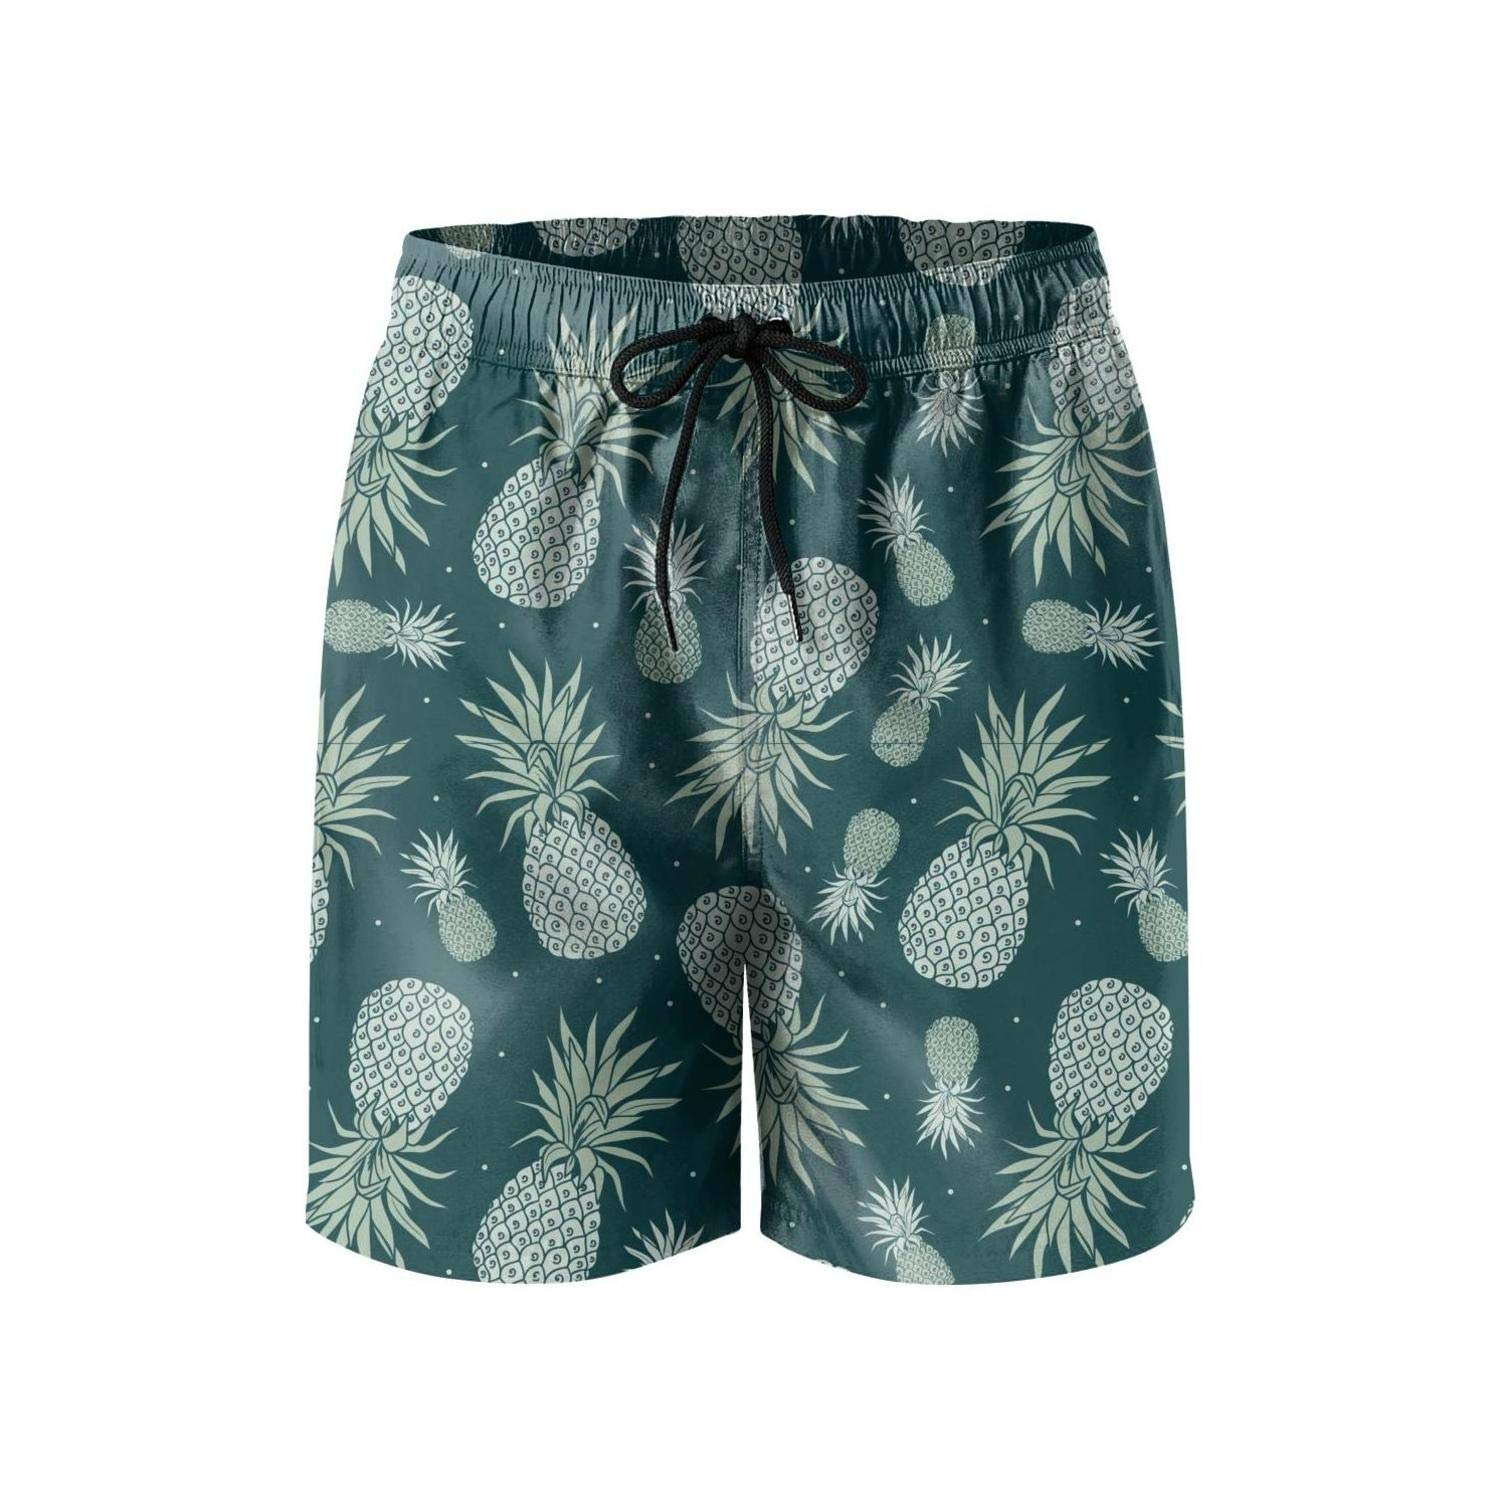 XIAYUTIAN6 Concept Pink and Ultraviolet Pineapple Mens Swimming Trunks Fun Quick Dry Gym Sweatpants